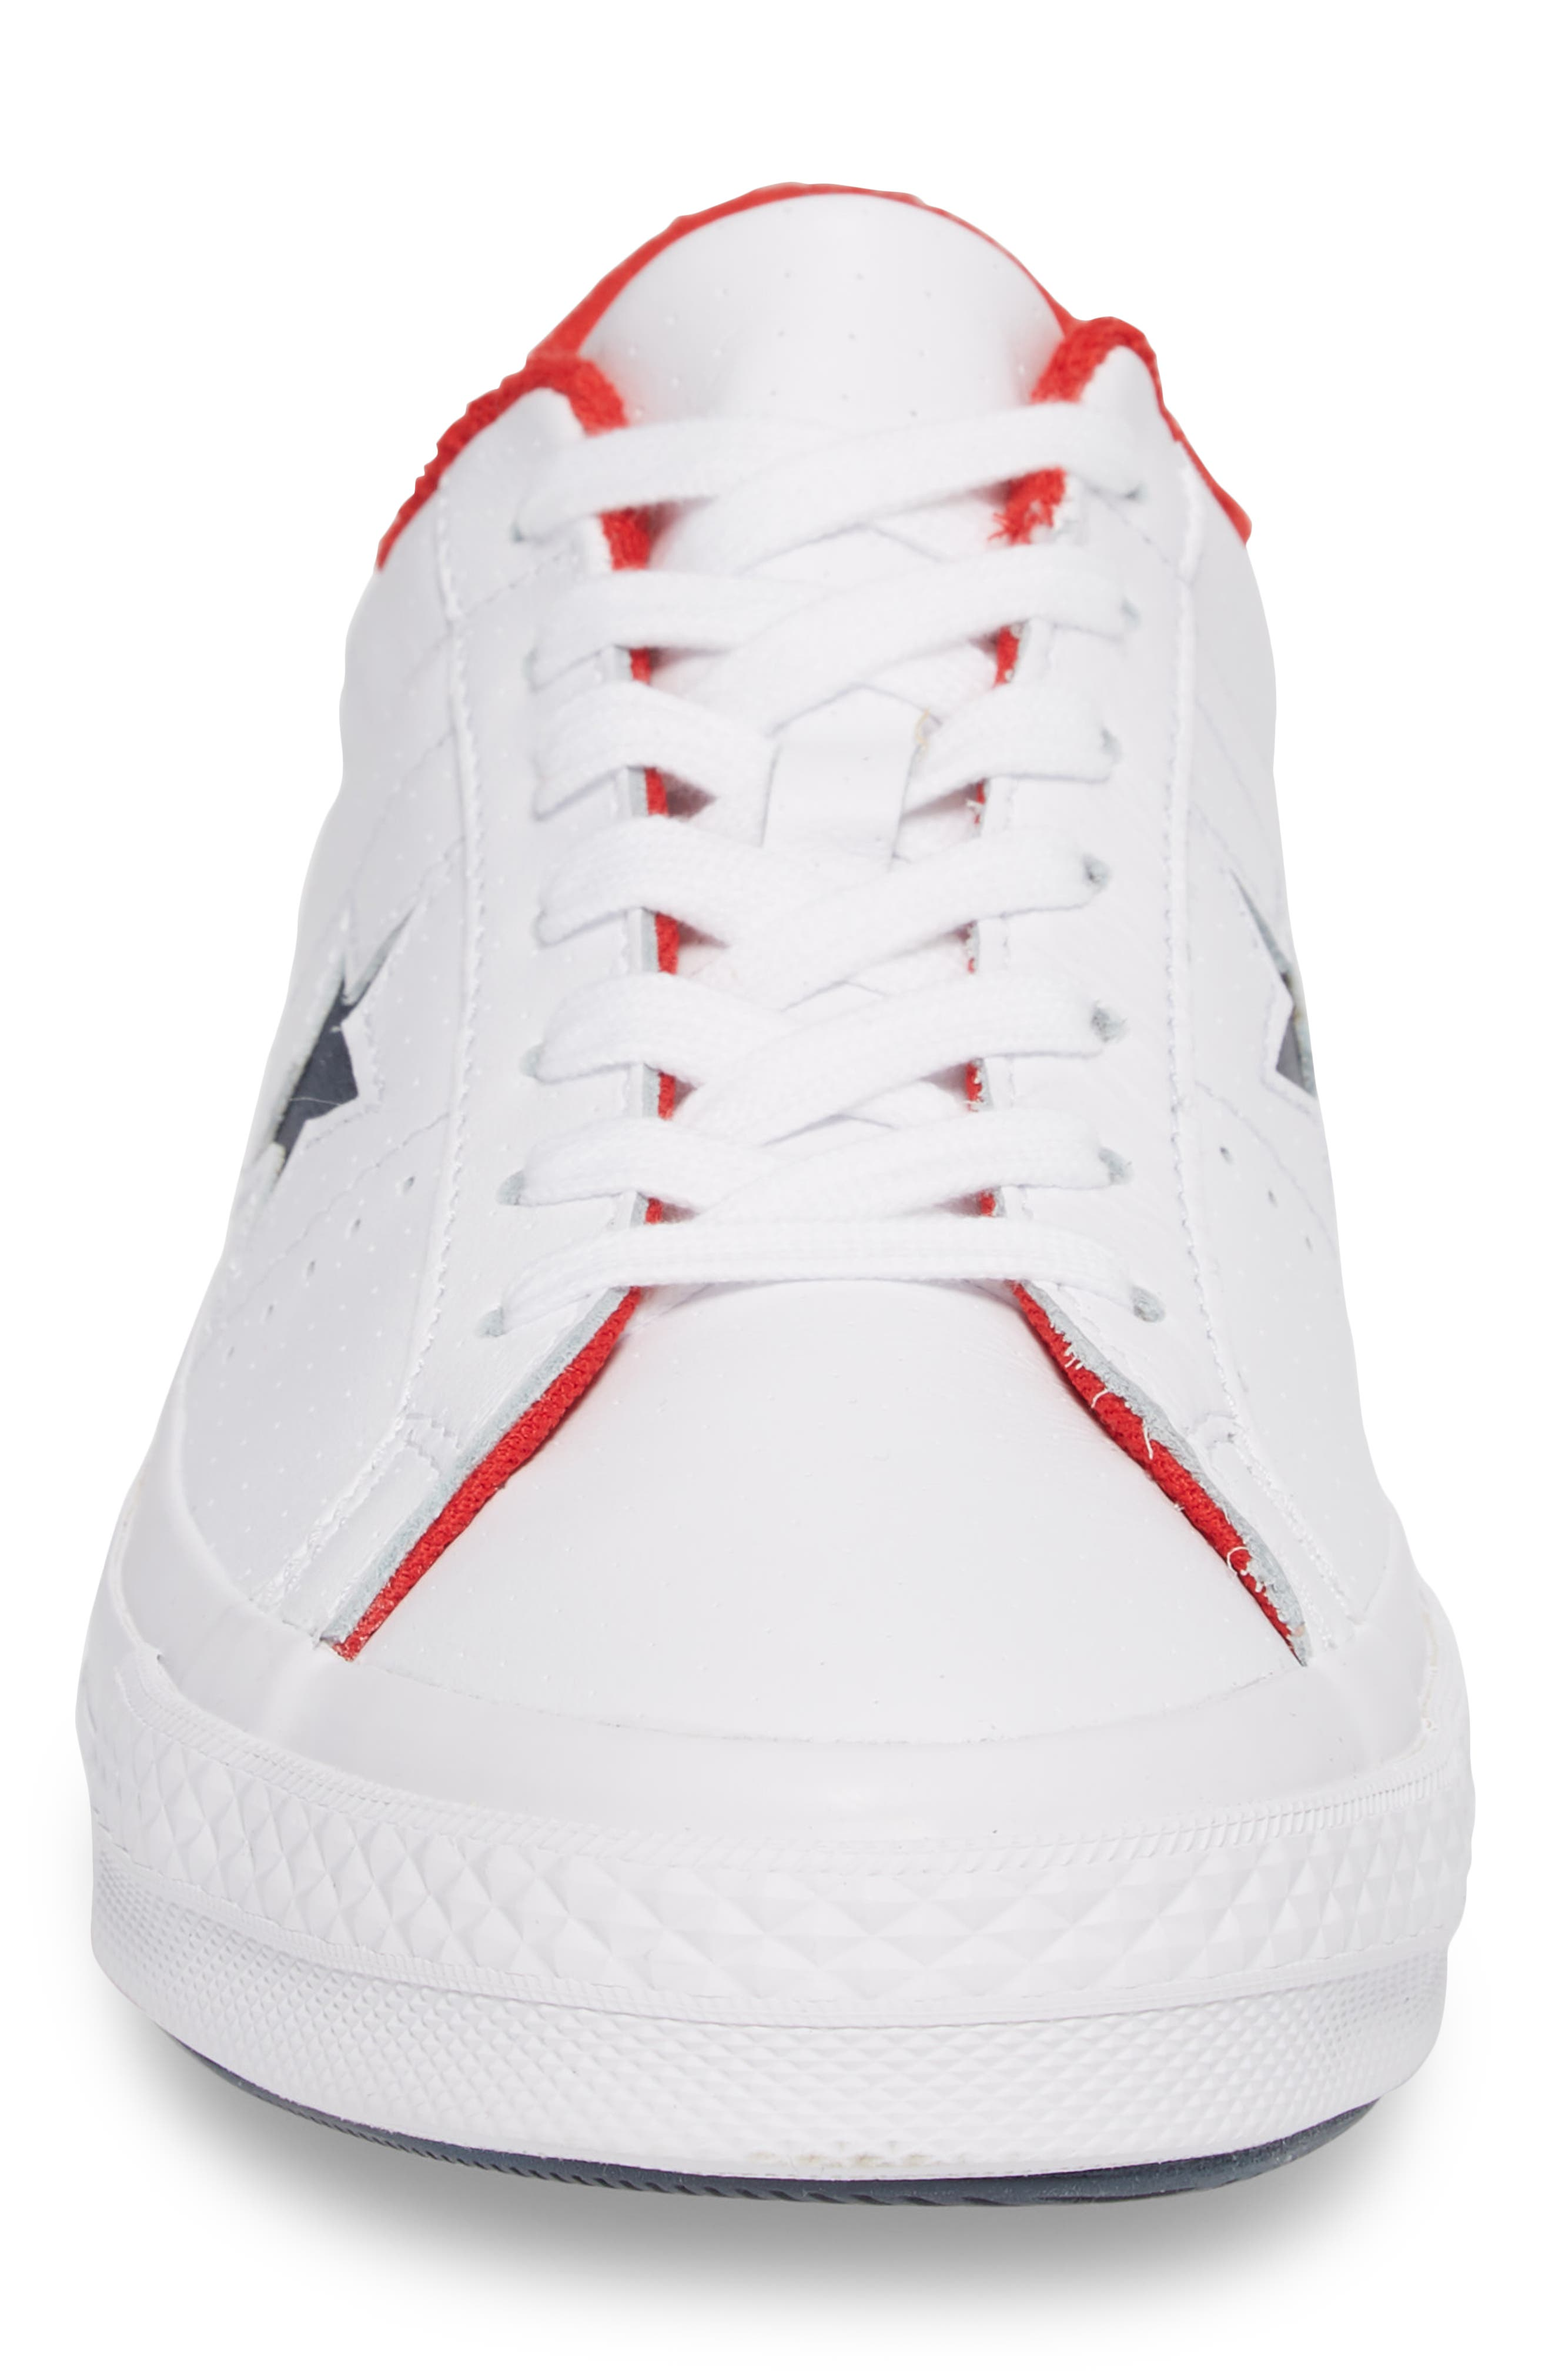 Chuck Taylor<sup>®</sup> One Star Grand Slam Sneaker,                             Alternate thumbnail 4, color,                             White/ Navy Leather